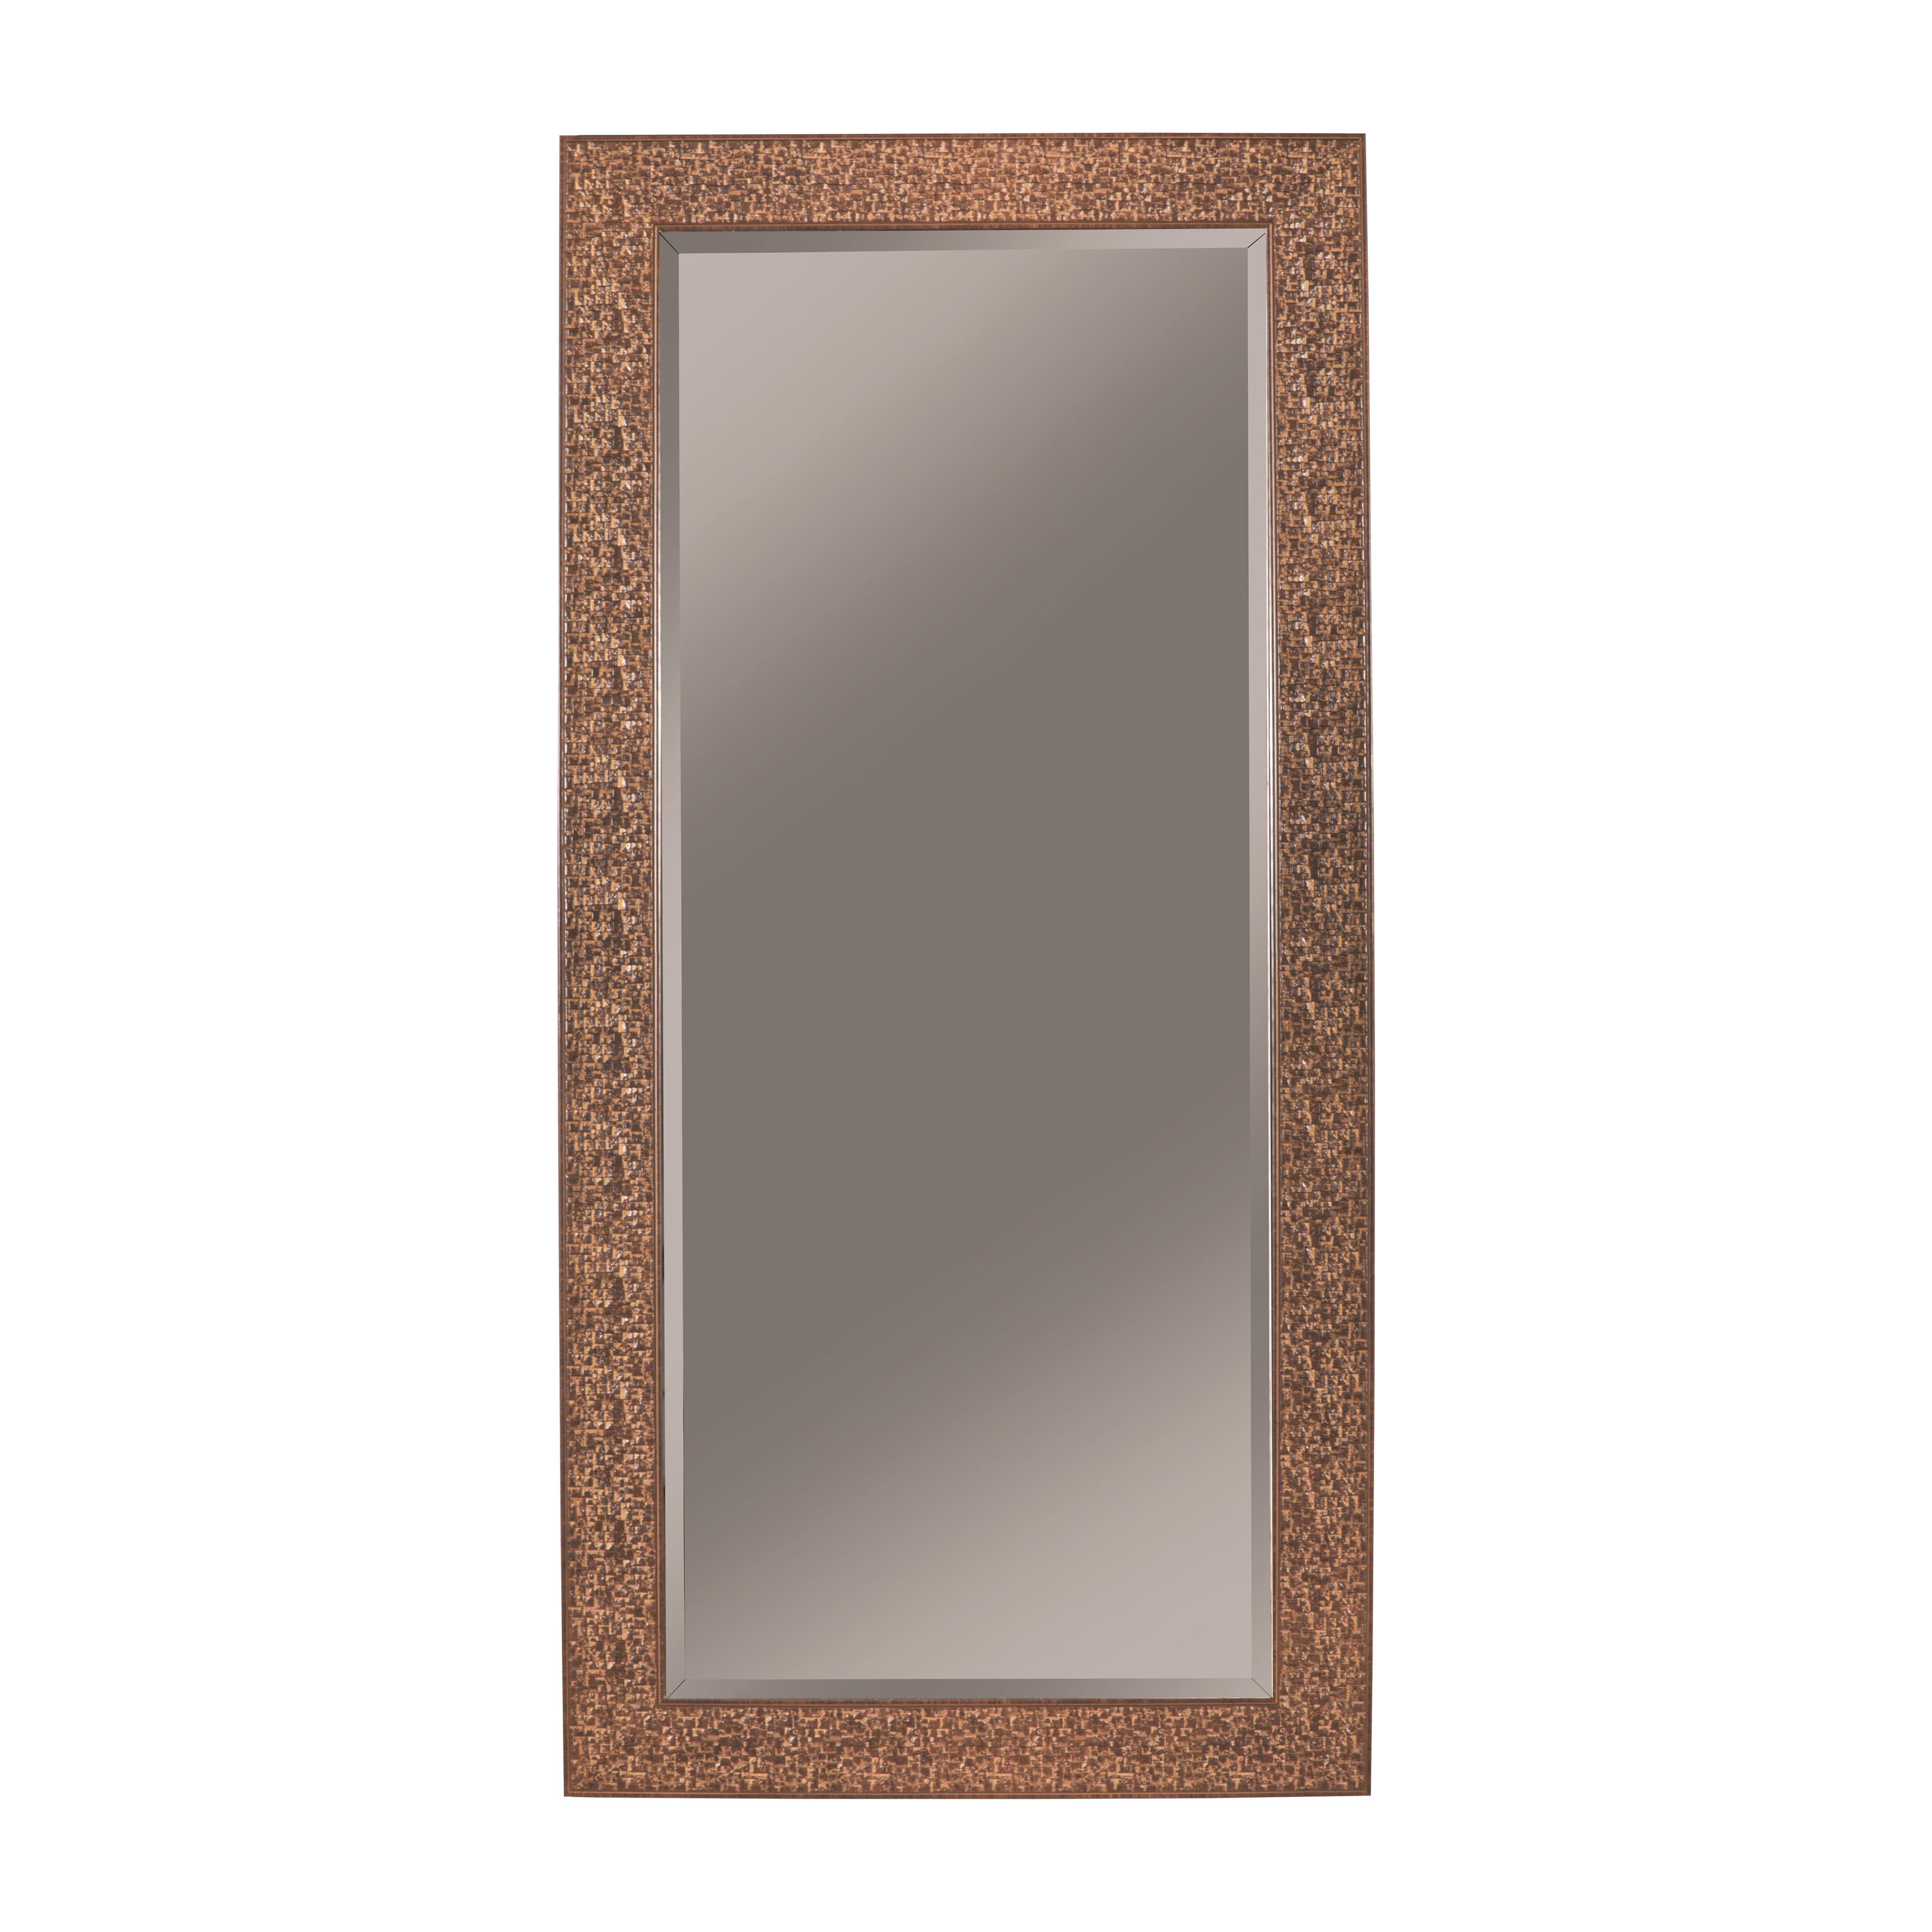 Coaster Accent Mirrors Mirror - Item Number: 901985